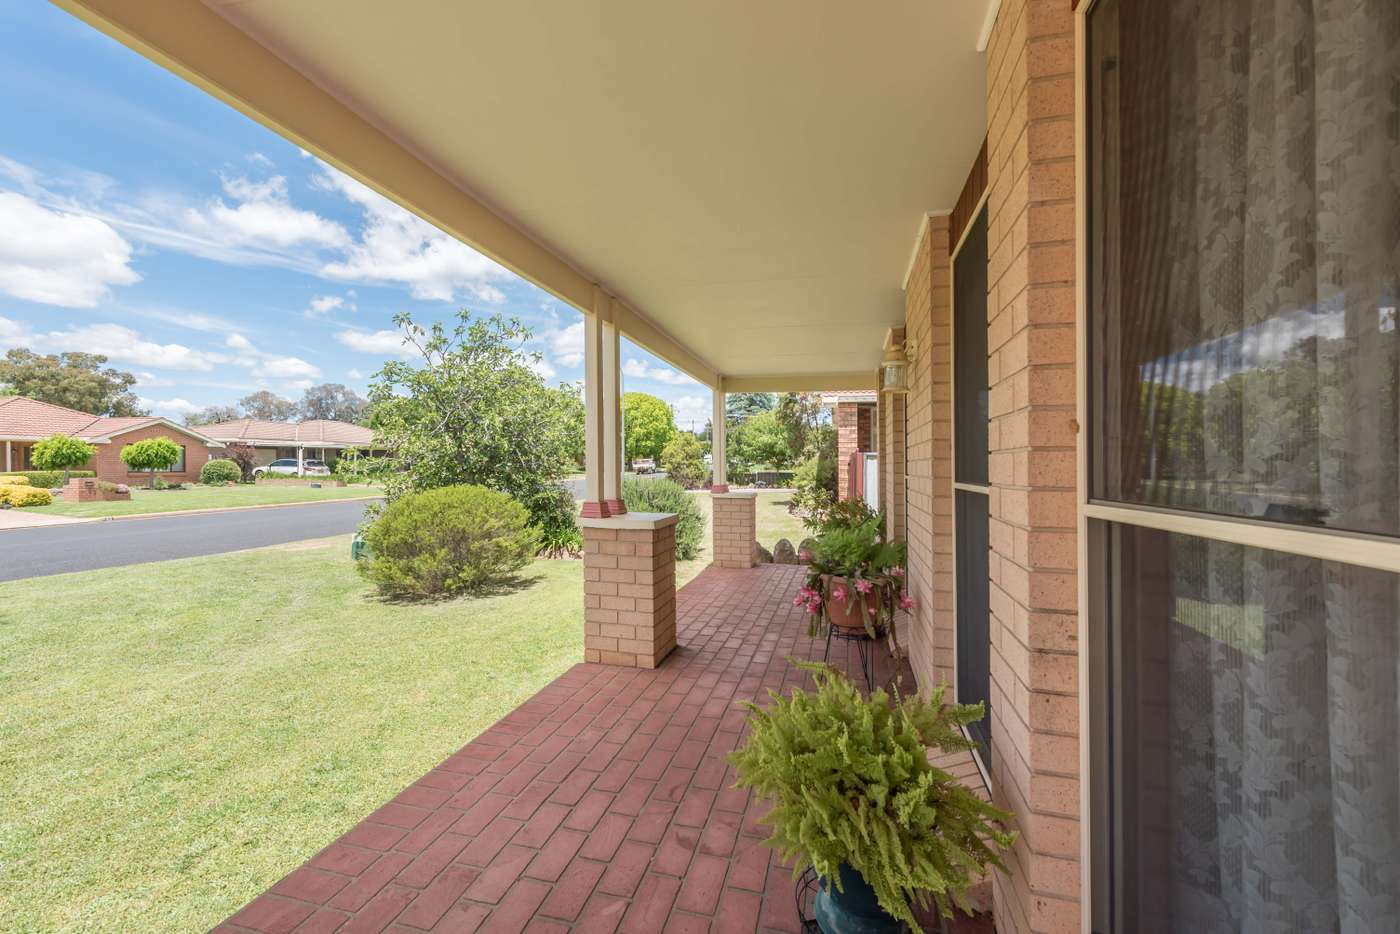 Fifth view of Homely house listing, 44 Mulgoa Way, Mudgee NSW 2850